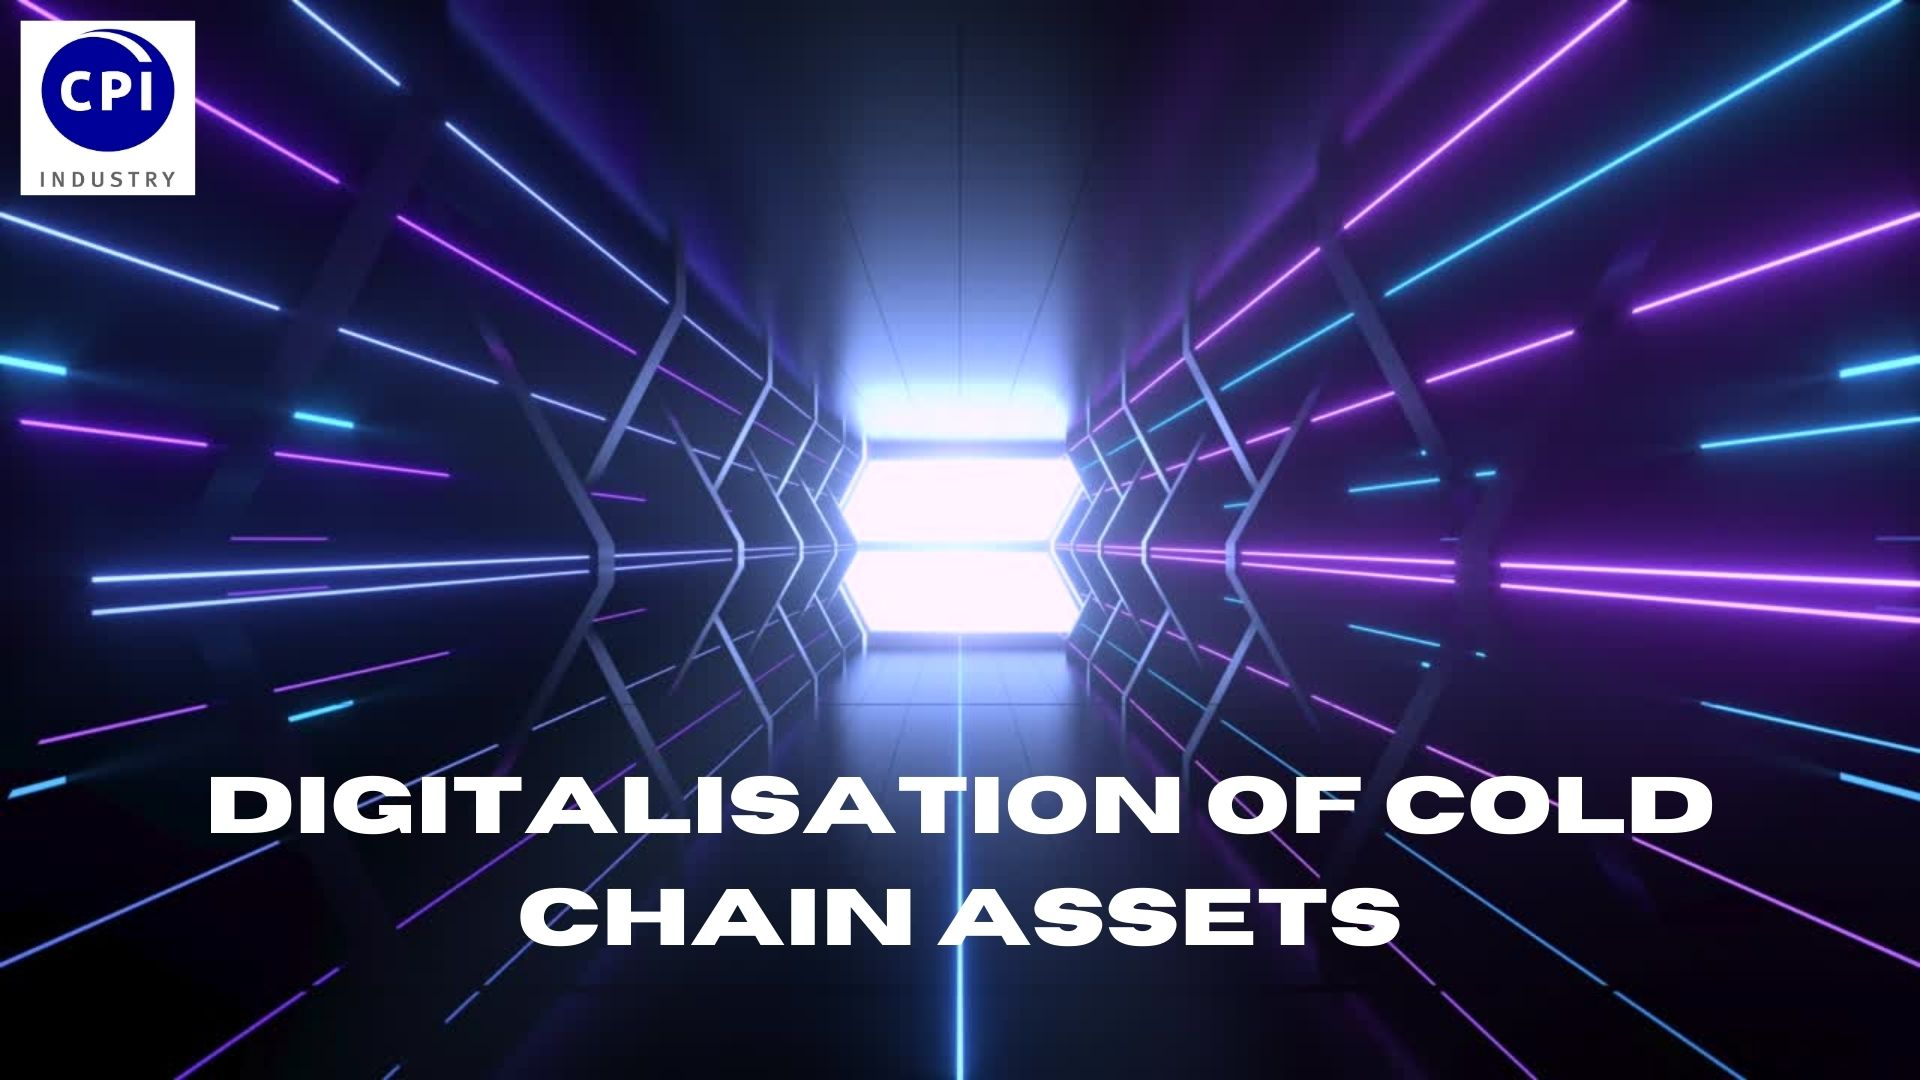 Digitalisation of cold chain assets